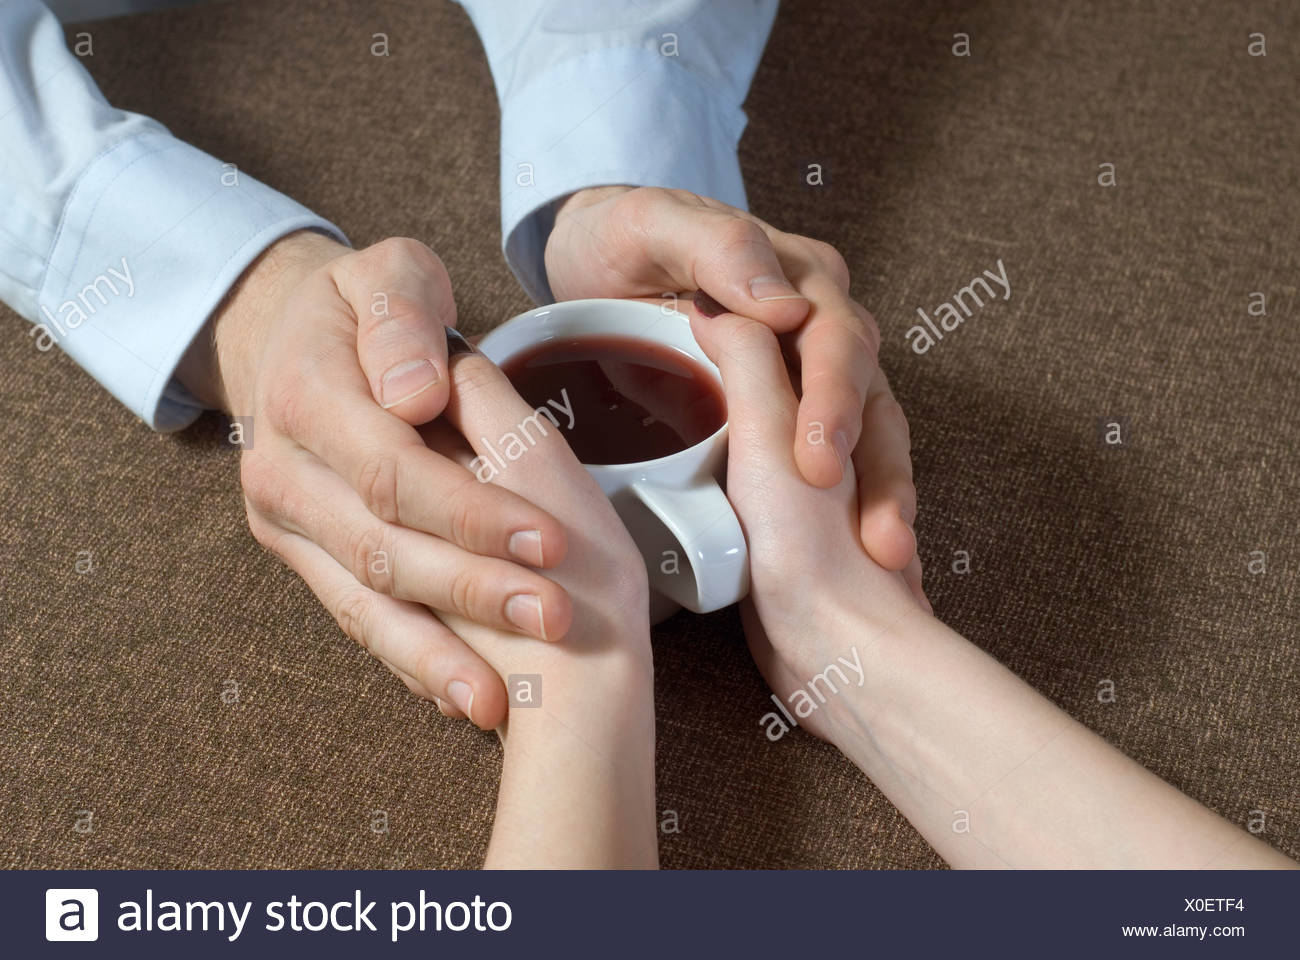 Close Up Of Young Couple Hand S Holding Tea Cup Together Stock Photo Alamy